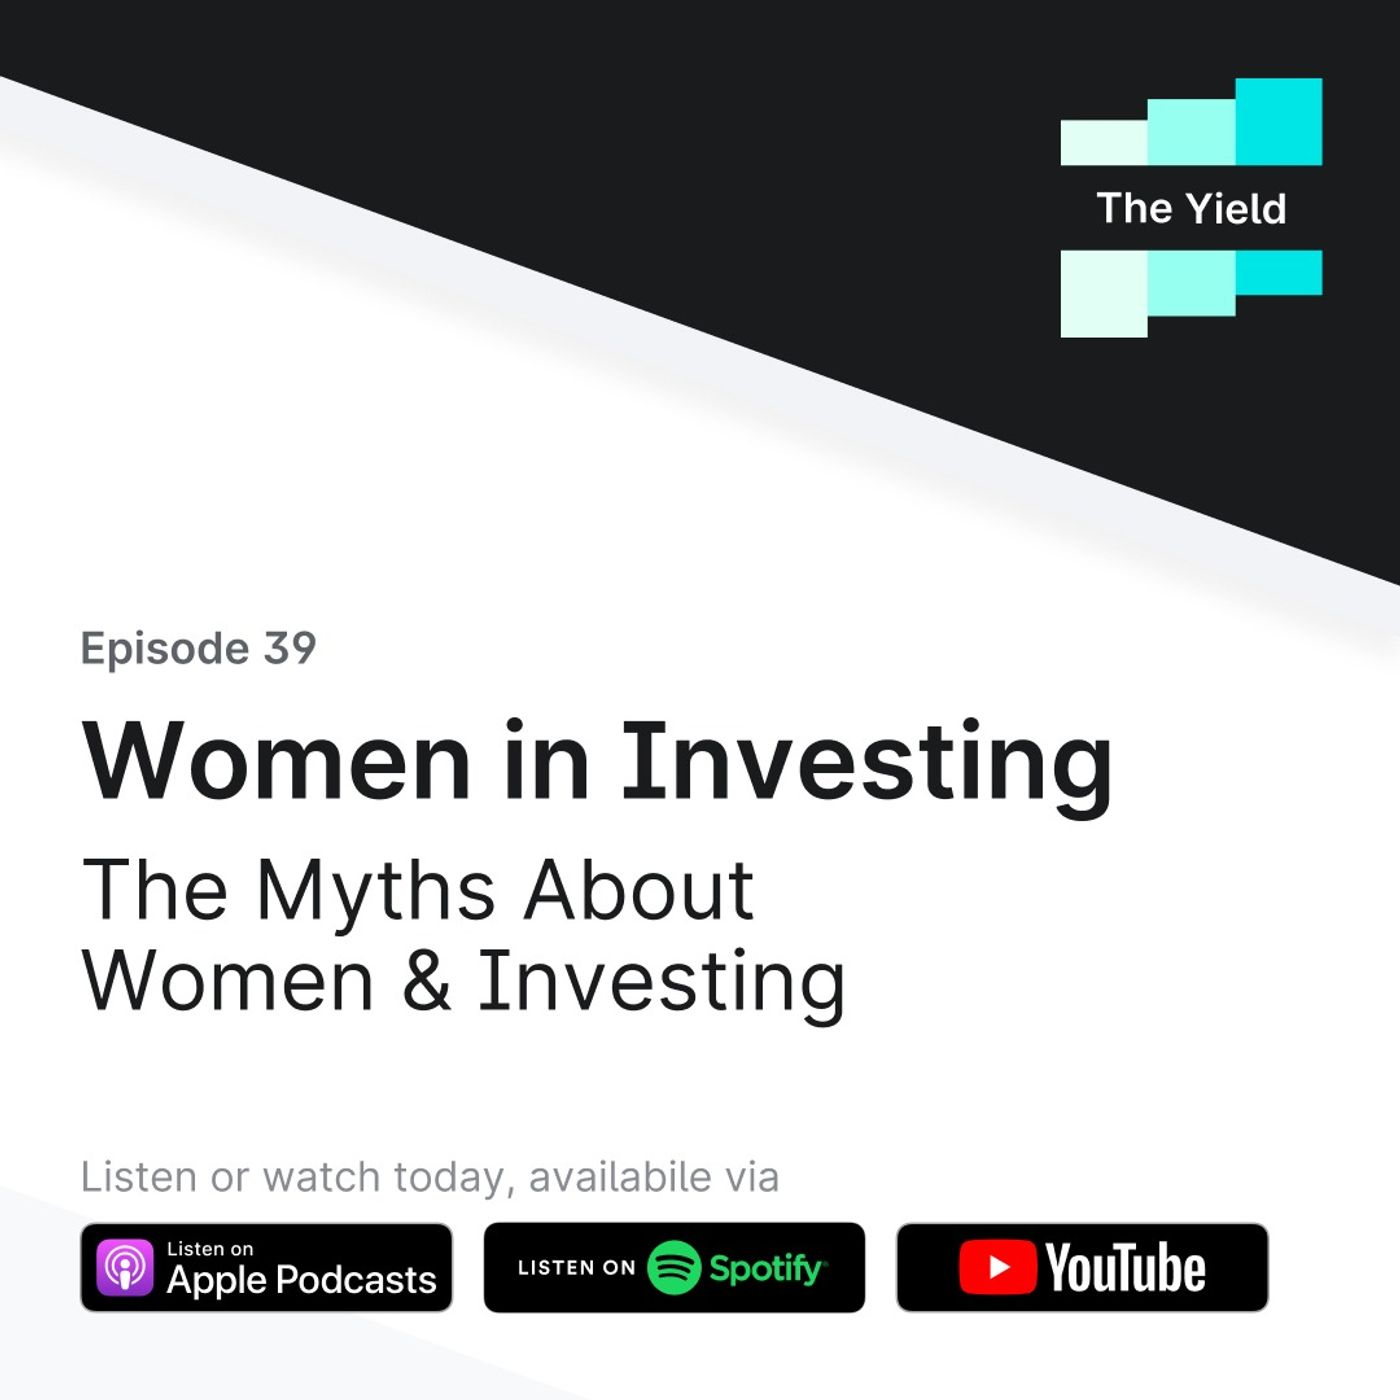 Women in Investing — The Myths About Women & Investing